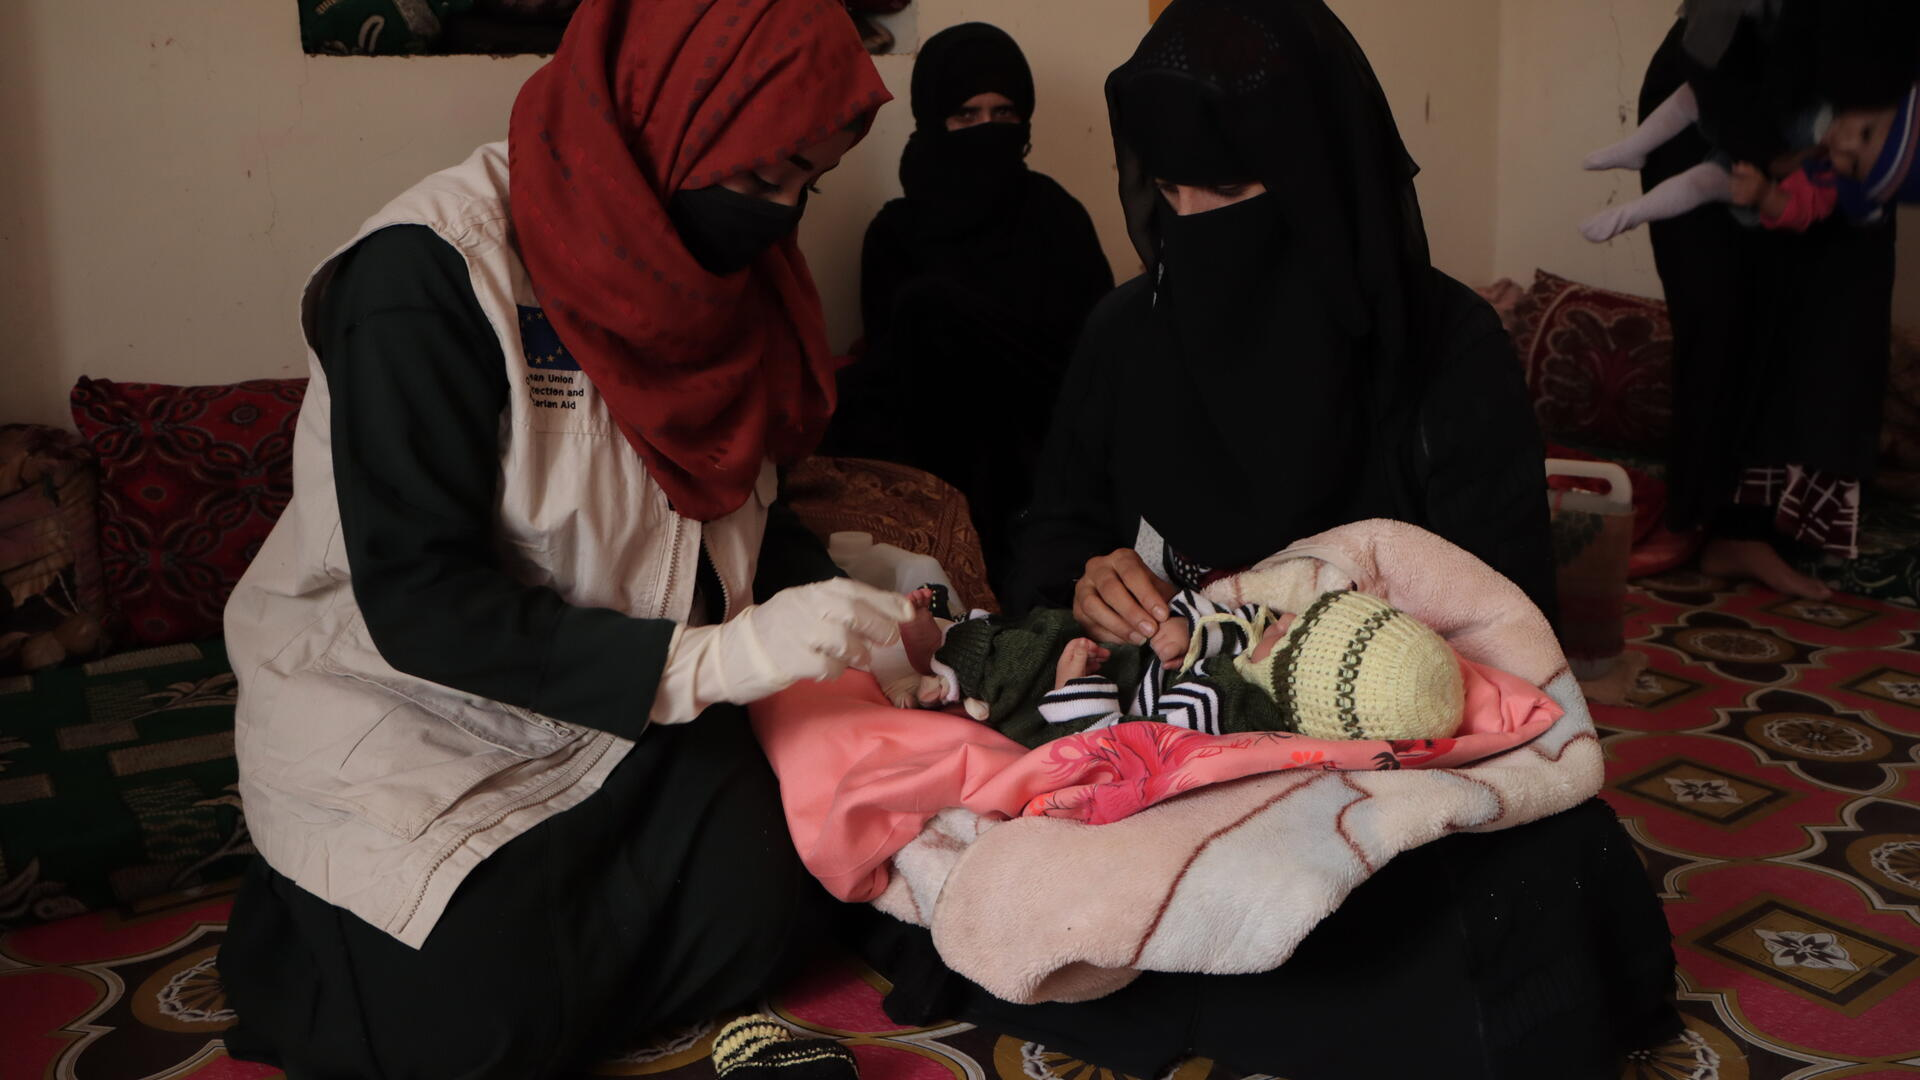 Dr. Bushra sits on a mat alongside her patient, whose newborn baby she is examining.